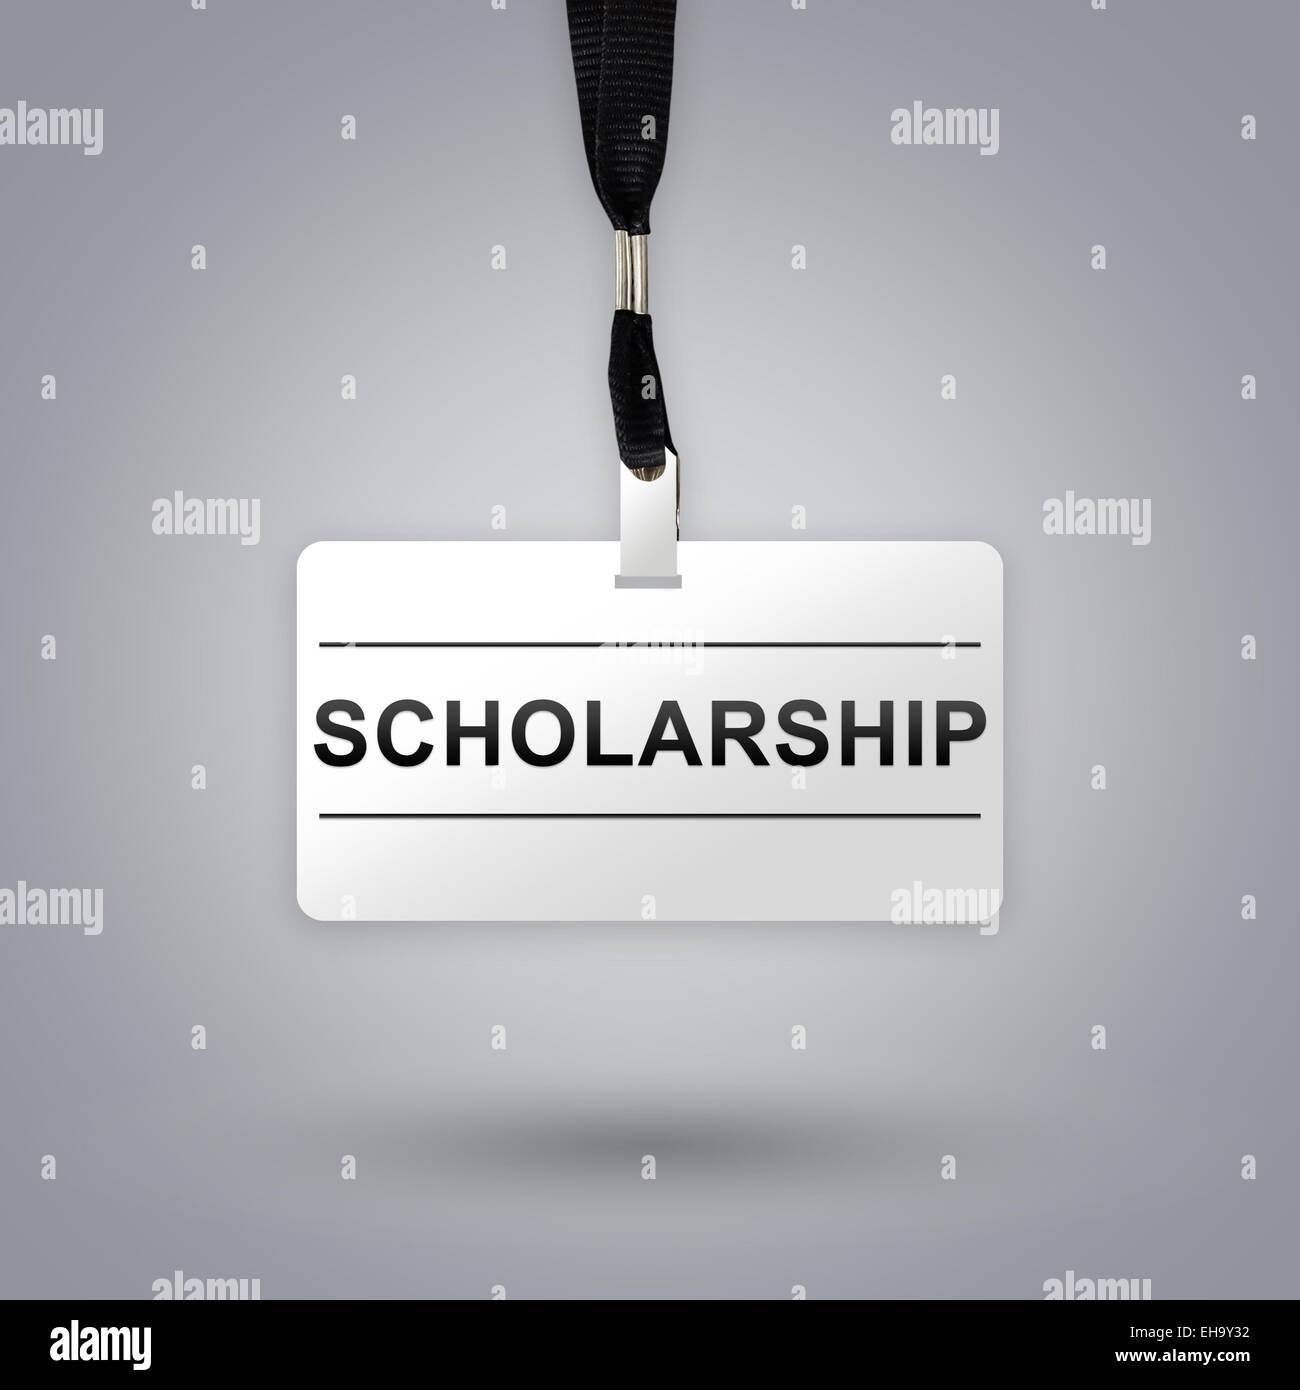 scholarship on badge with grey radial gradient background - Stock Image